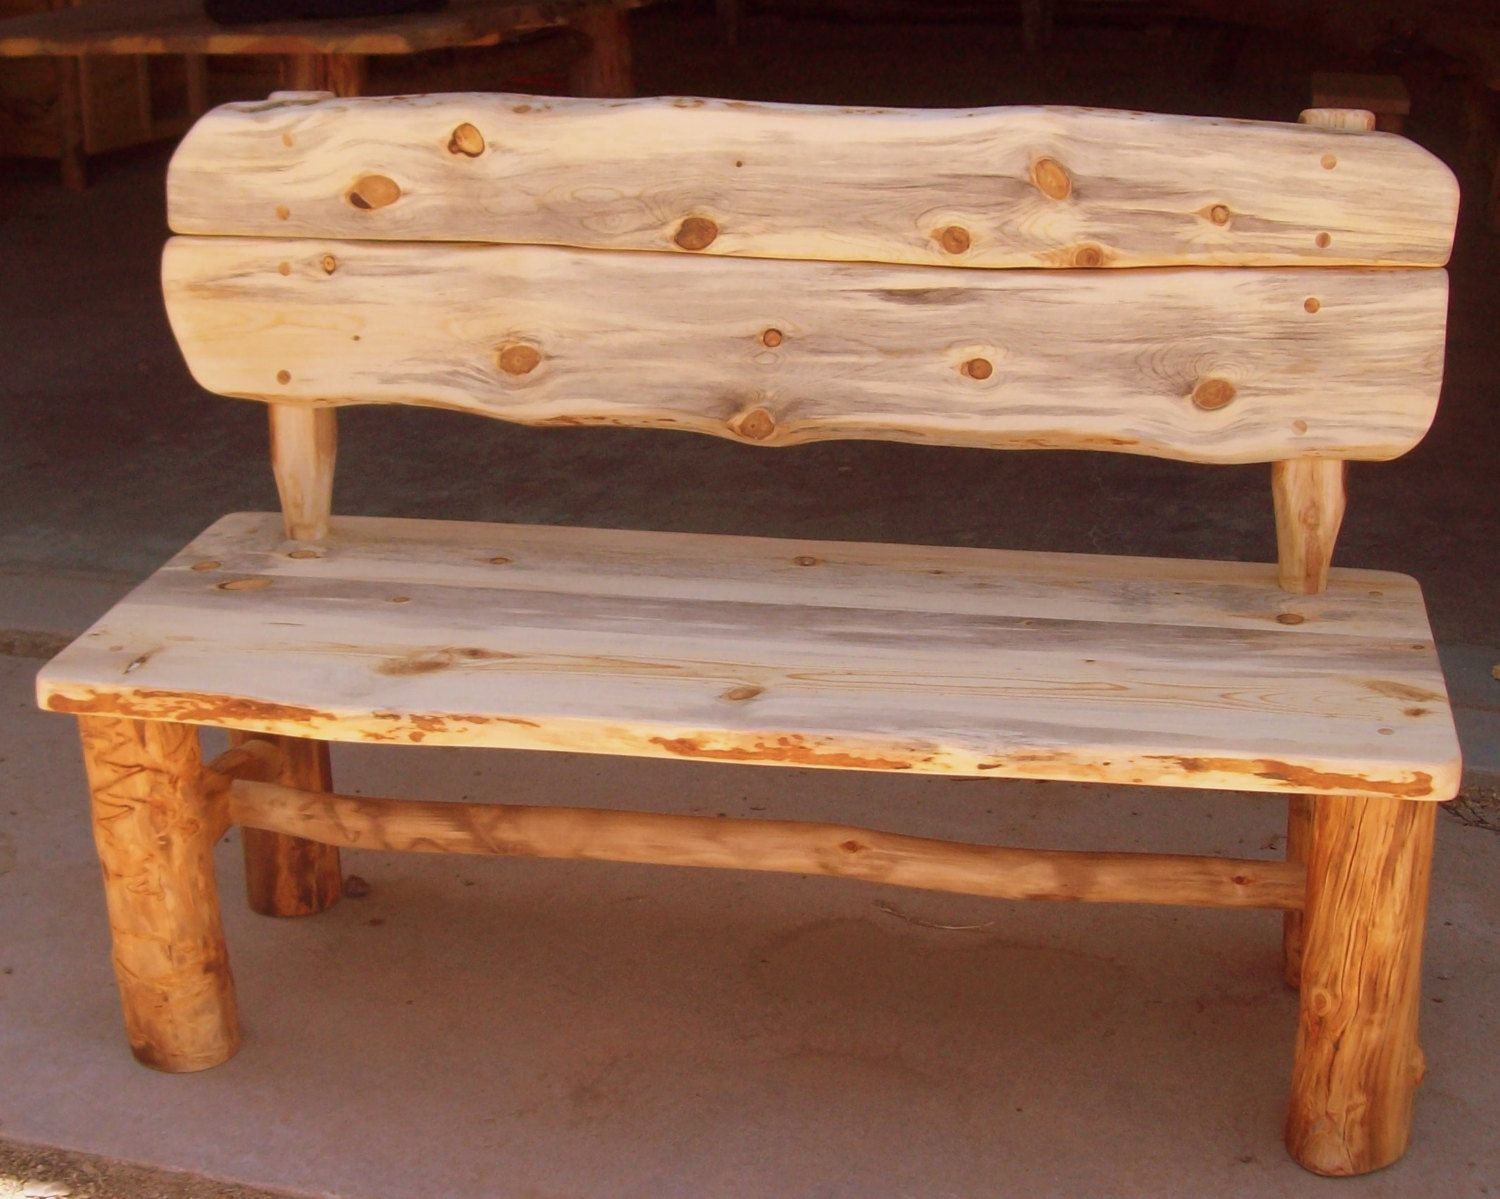 Wedding guest book alternative rustic wood bench with backs sustainable furniture rustic furniture from naturally aspen 495 00 usd by naturallyaspen